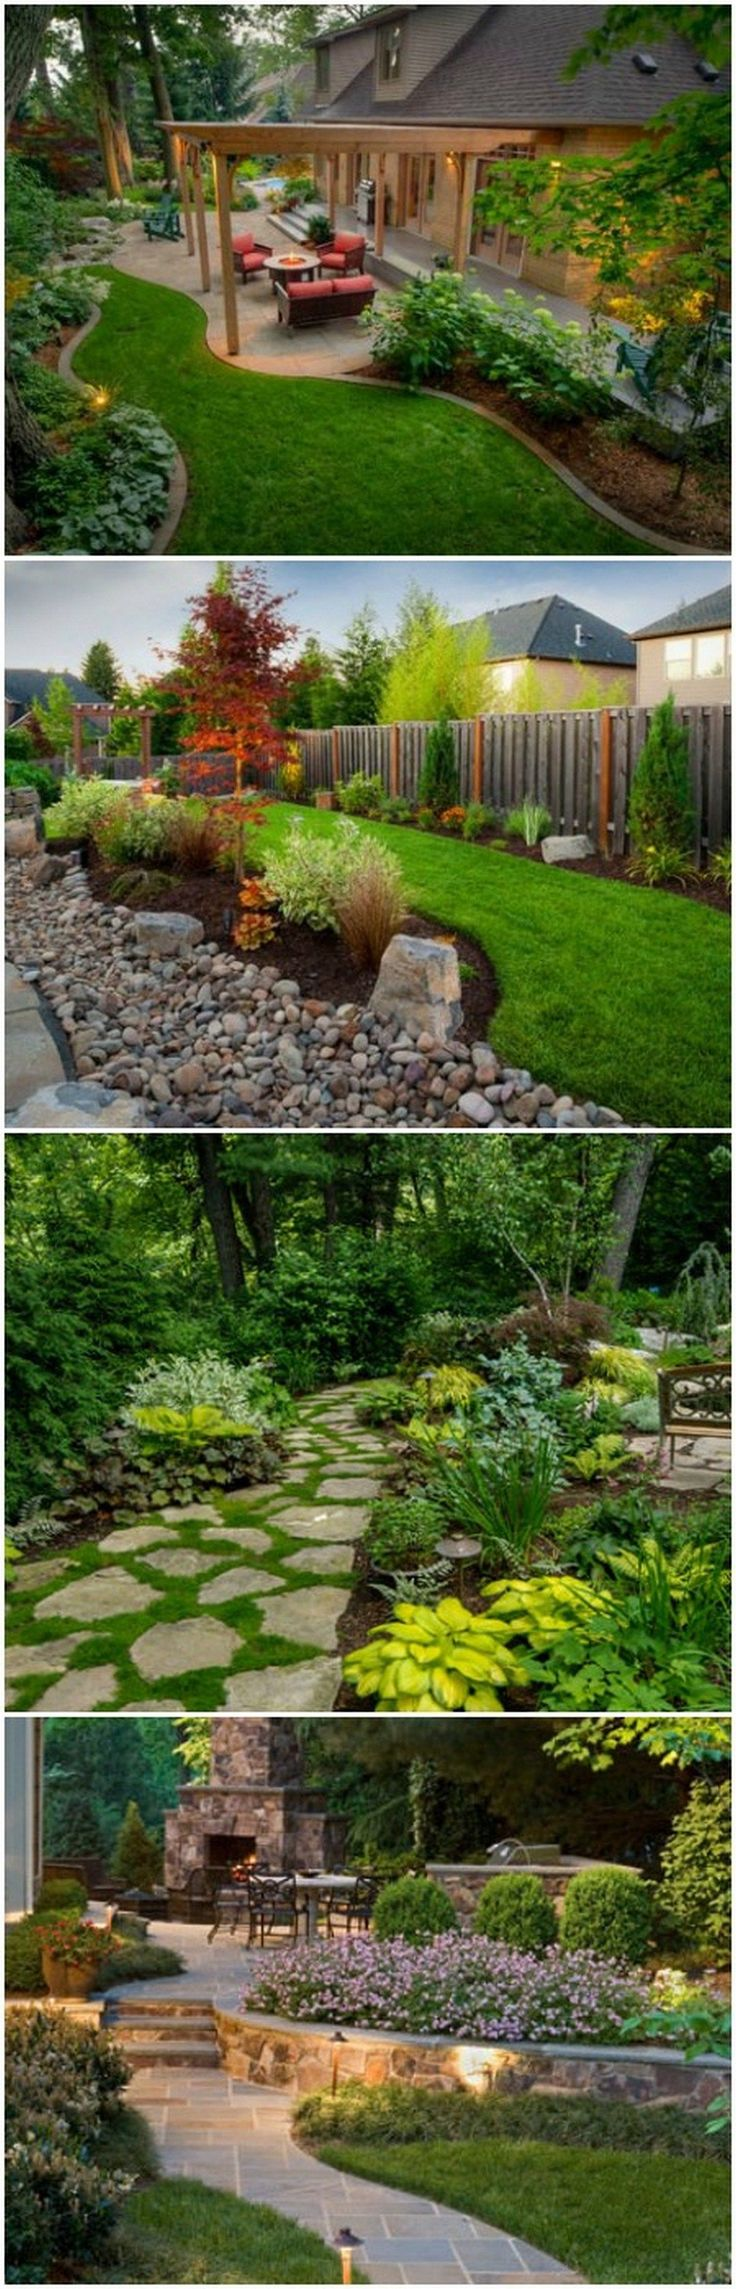 Design Backyard Landscape 20 rock garden ideas that will put your backyard on the map 75 Brilliant Backyard Landscaping Design Ideas 14